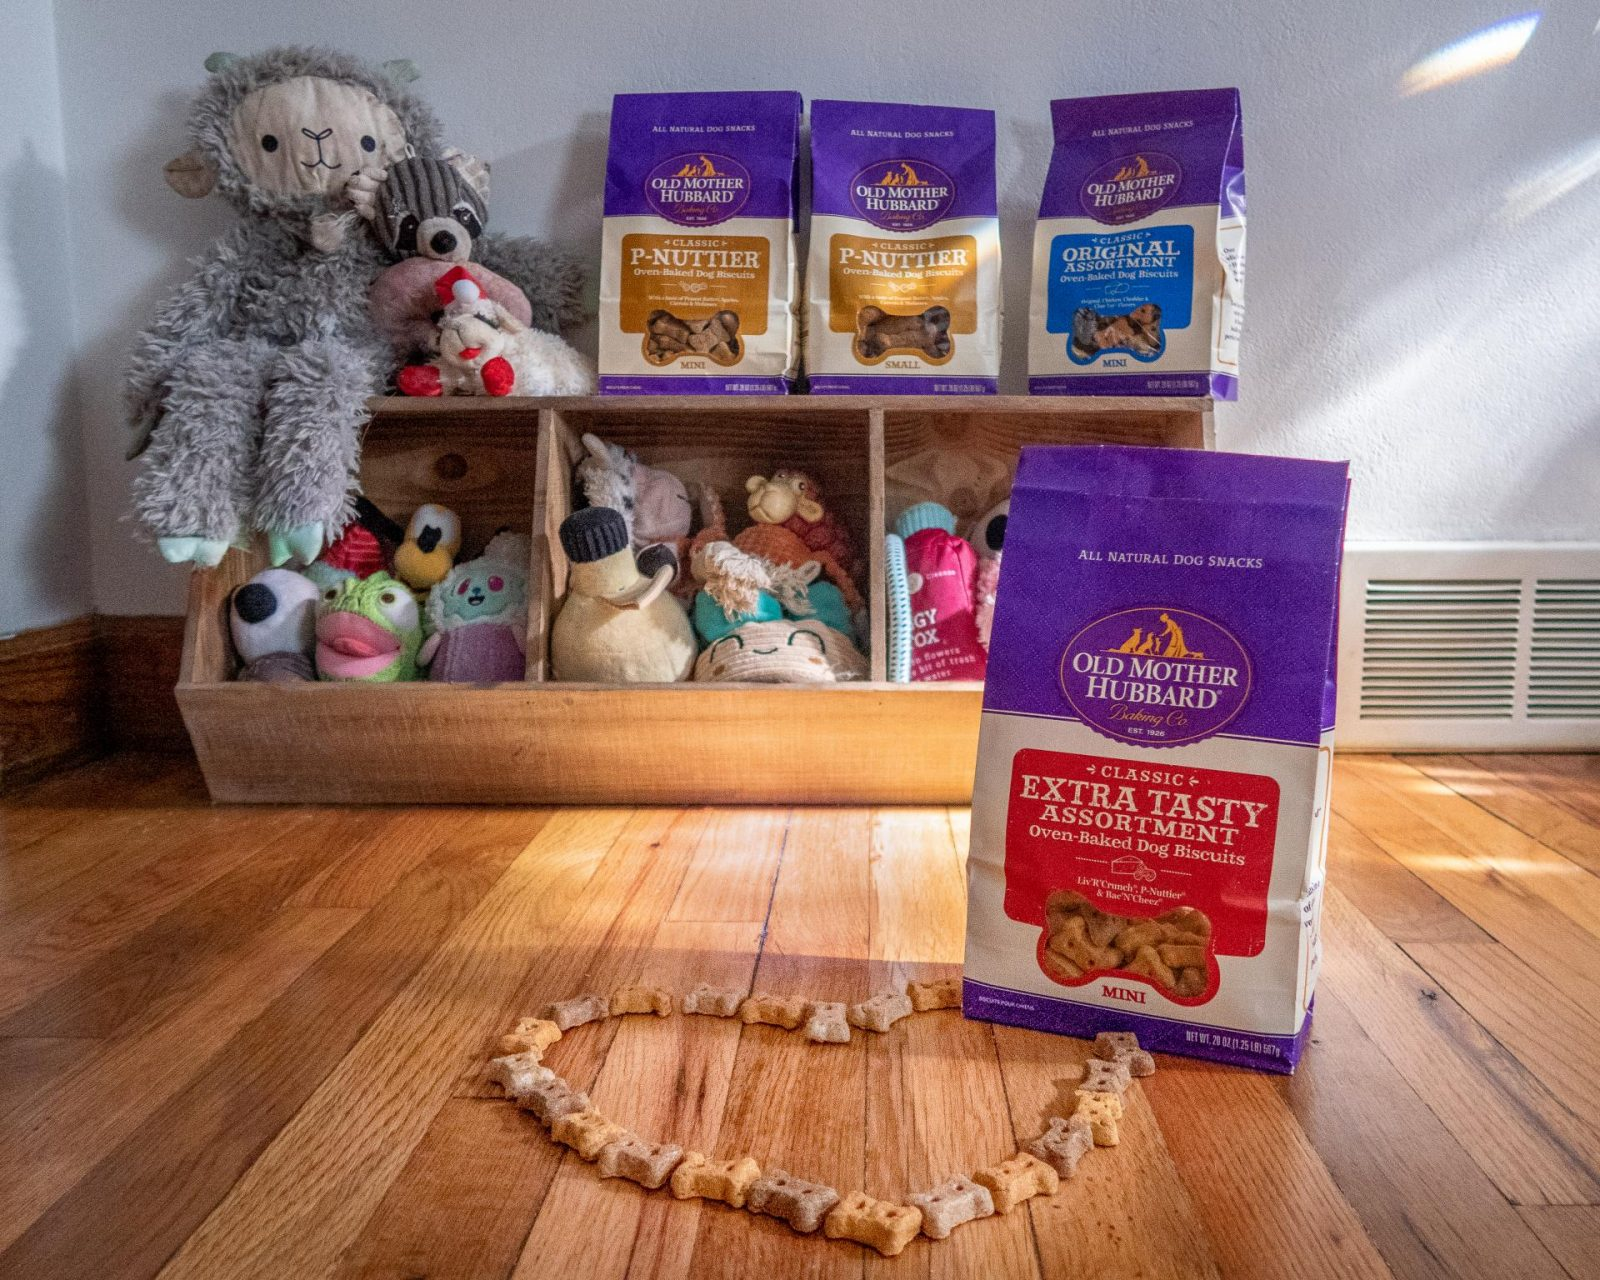 Old Mother Hubbard dog treats are lined up on Maisie the Saint Bernard's toy box, with the Extra Tasty Assortment bag in focus in front of the photos.